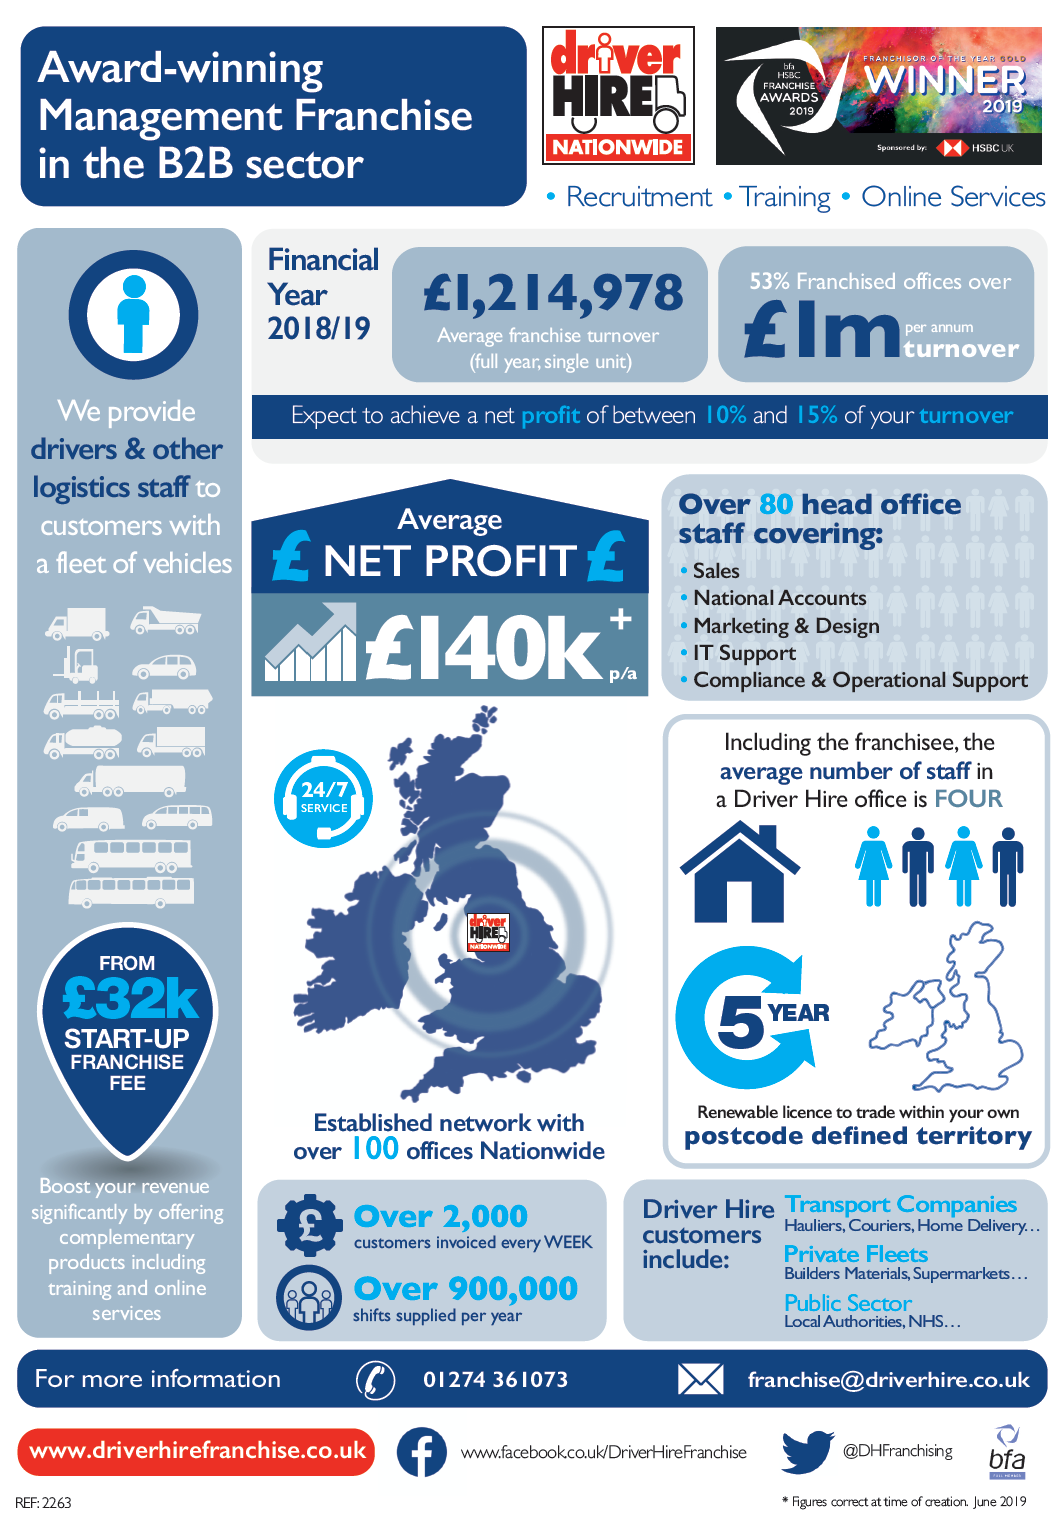 Driver Hire Franchise Opportunities in numbers - Infographic